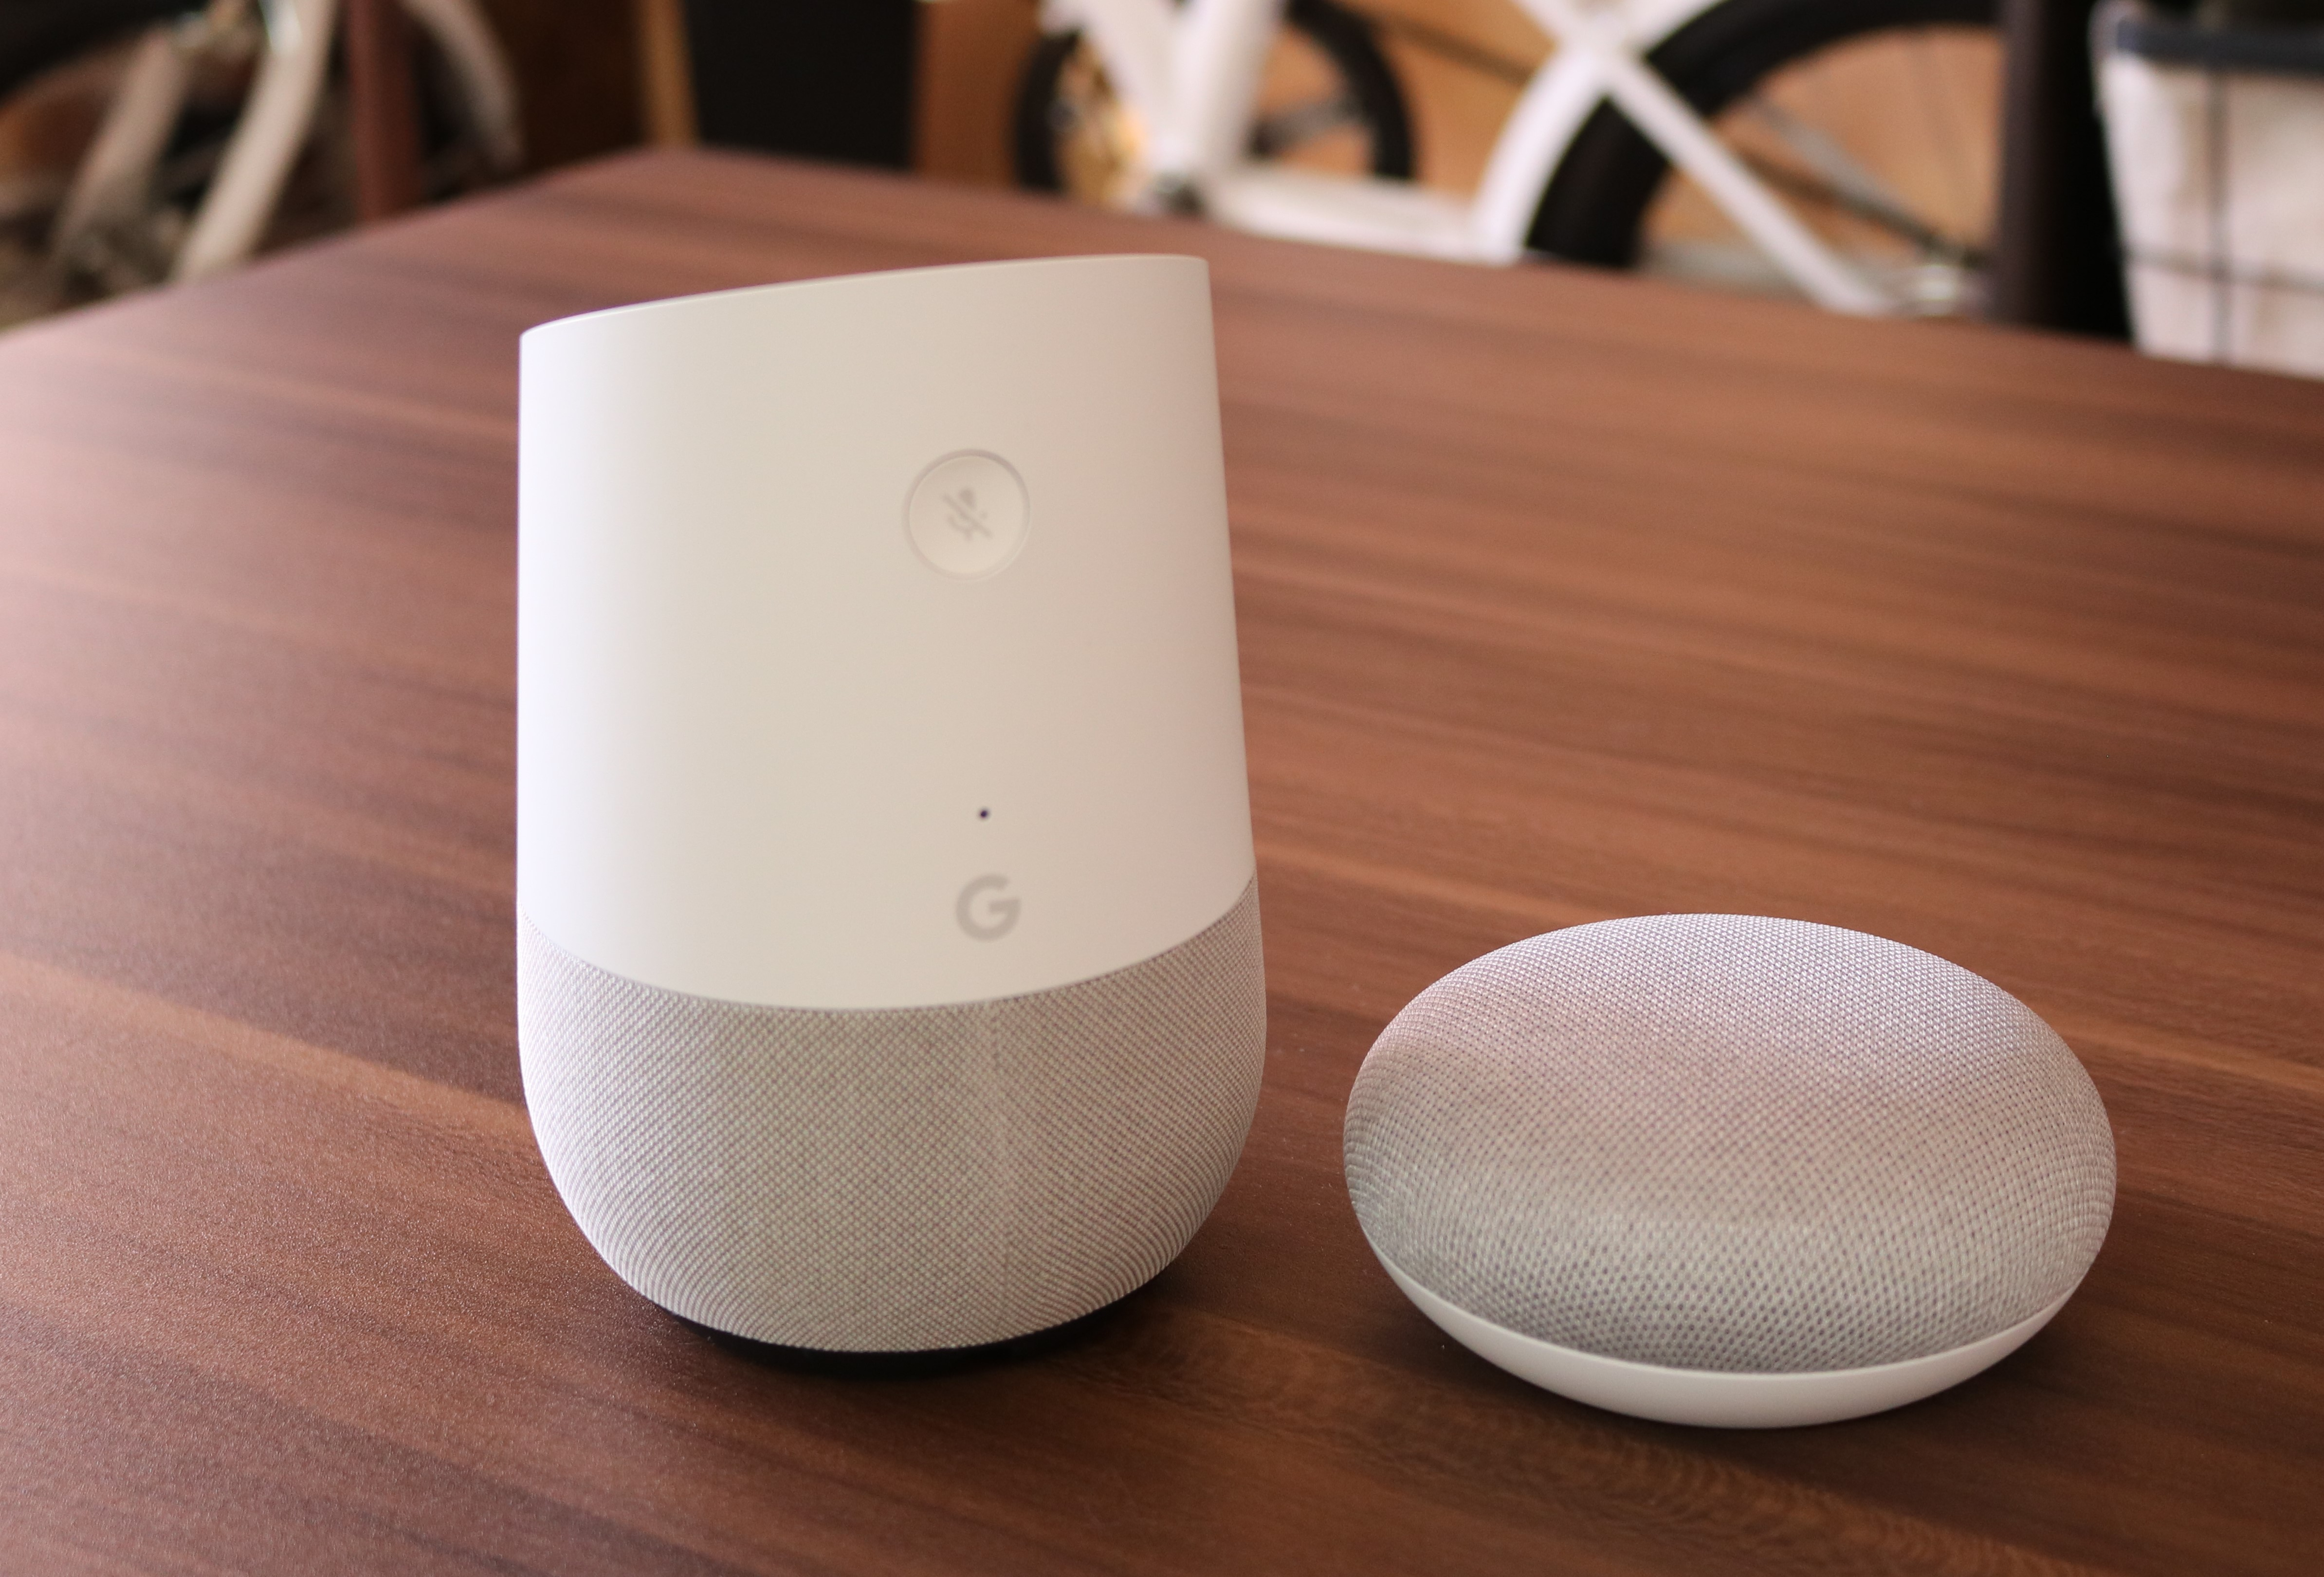 Google HomeとGoogle Home Miniの写真